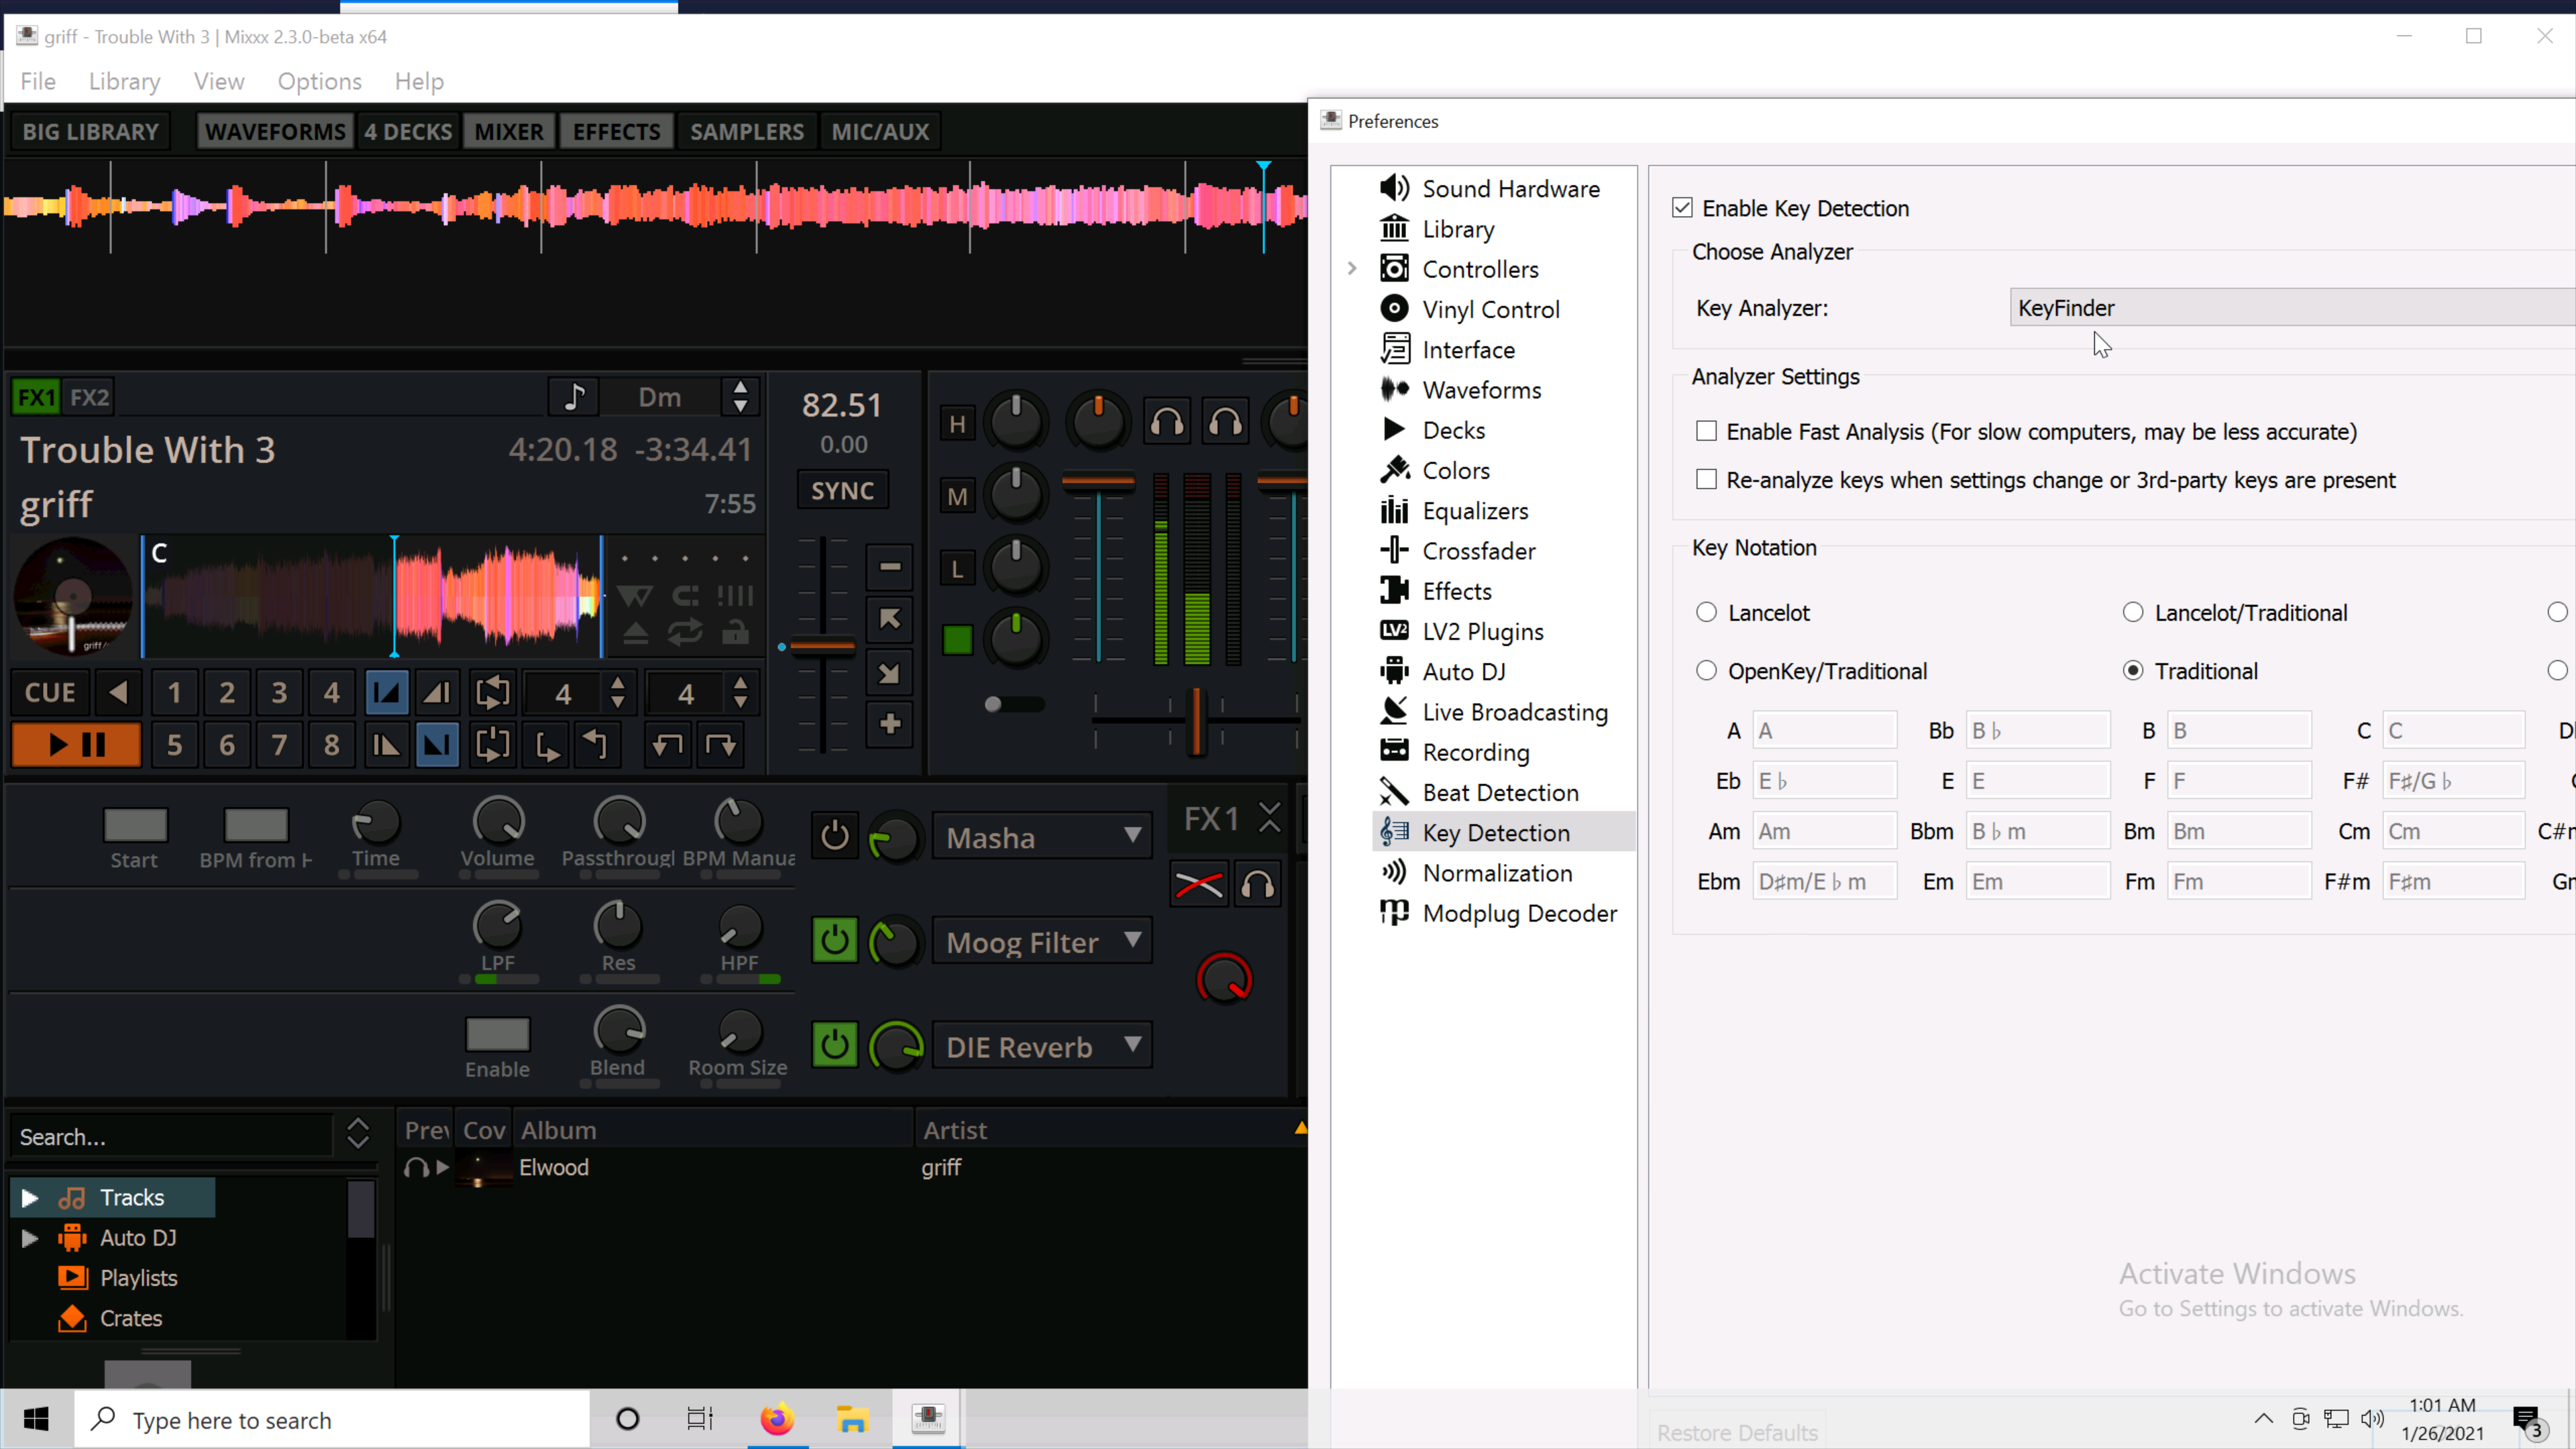 Screenshot showing Mixxx with LV2 plugins, module tracker support, and KeyFinder support